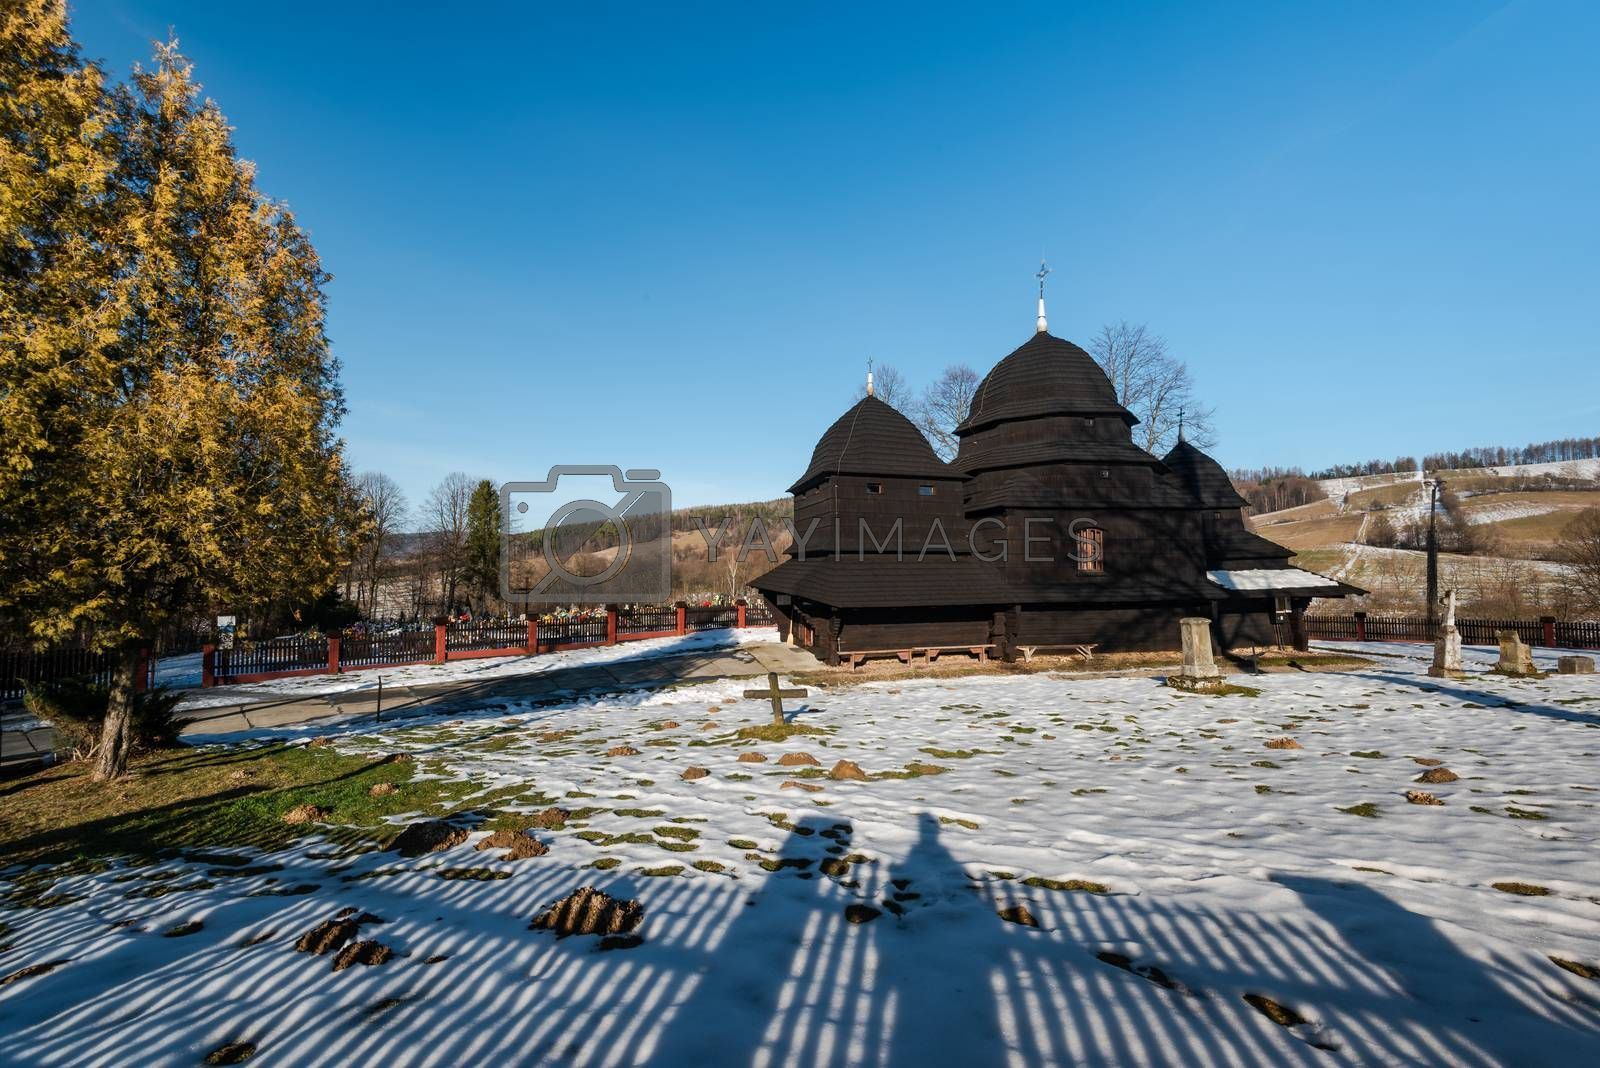 Exterior of Rownia Wooden Orthodox Church.  Bieszczady Architecture in Winter. Carpathia Region in Poland.